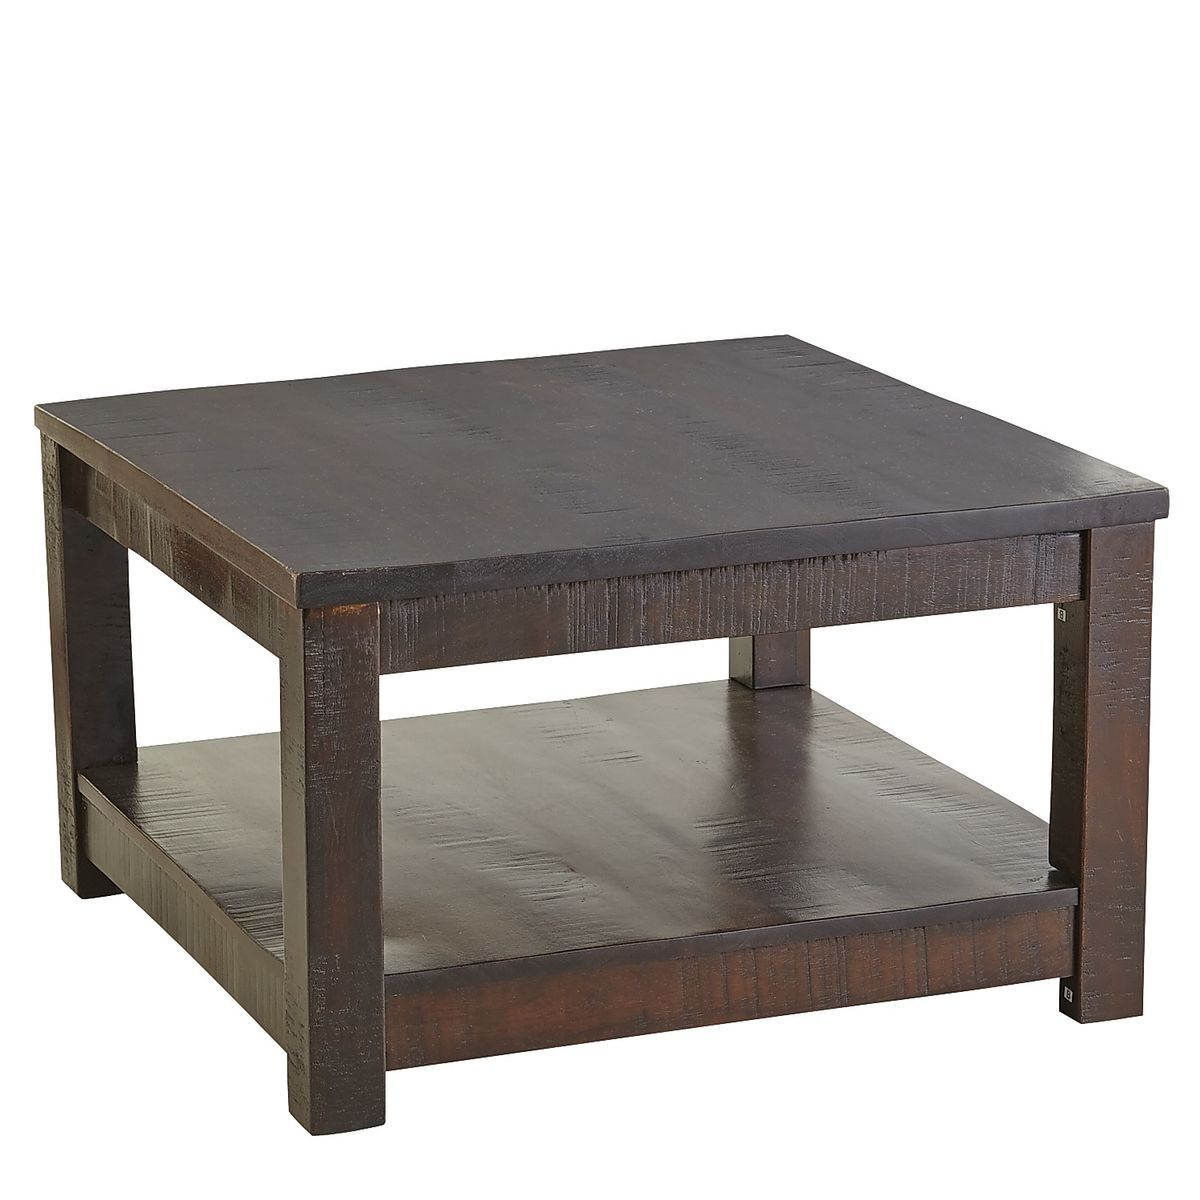 Green Coffee Tables Parsons Square Coffee Table Tobacco Brown Pier 1 Imports Gcc